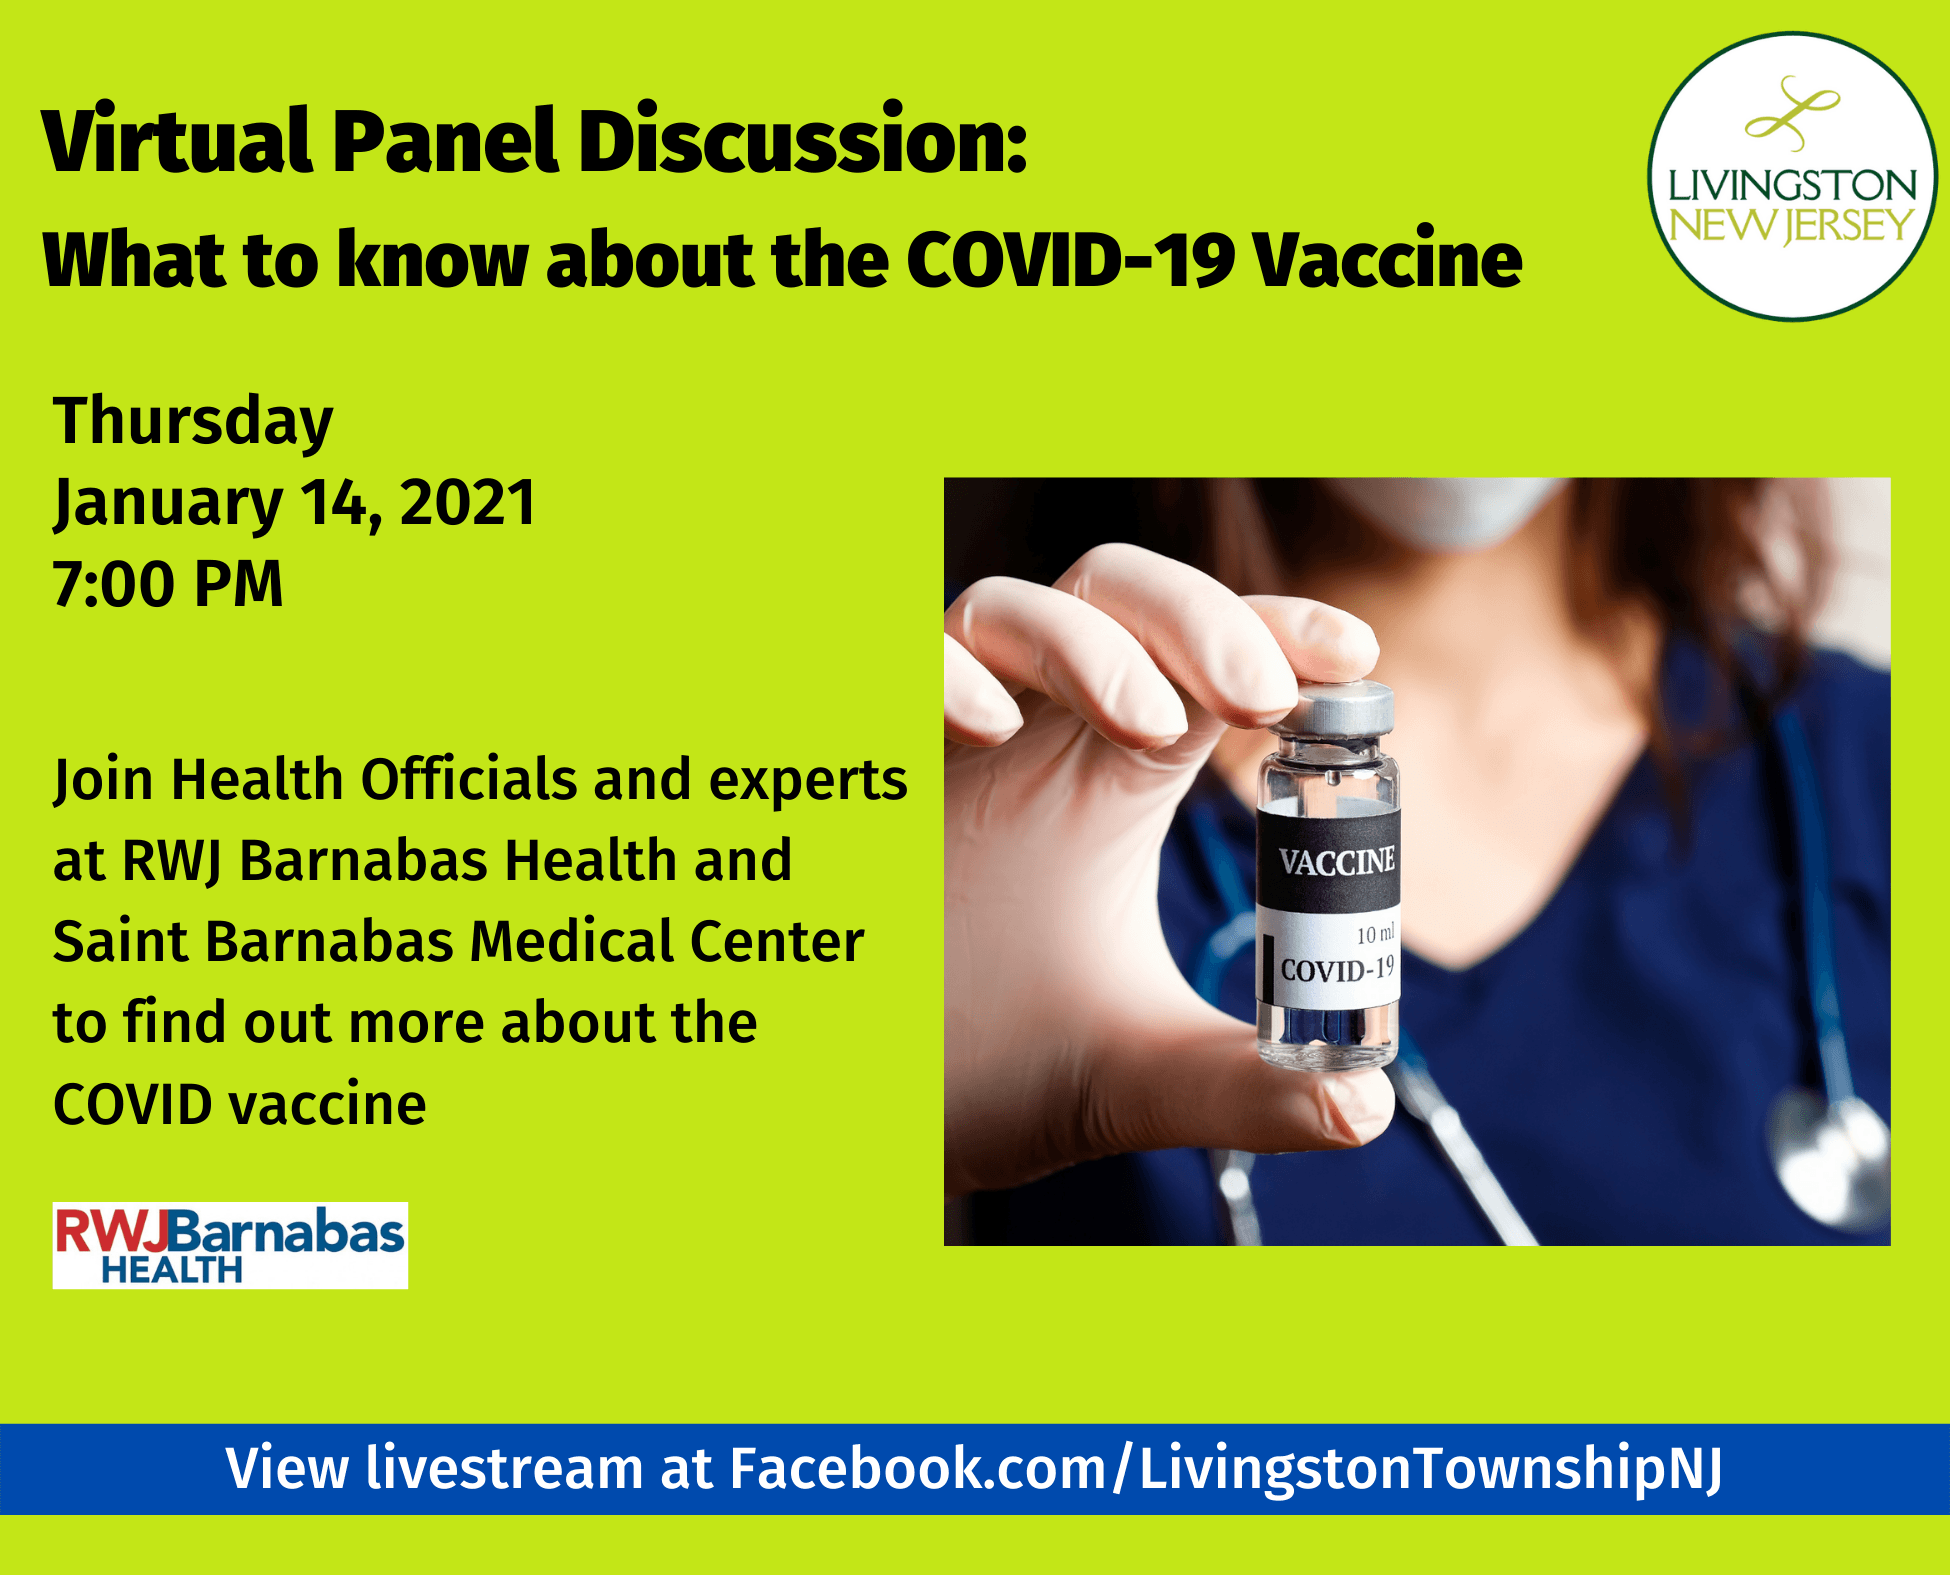 Virtual Panel Discussion on COVID-19 Vaccine on Thursday, Jan. 14, 2021 at 7 pm